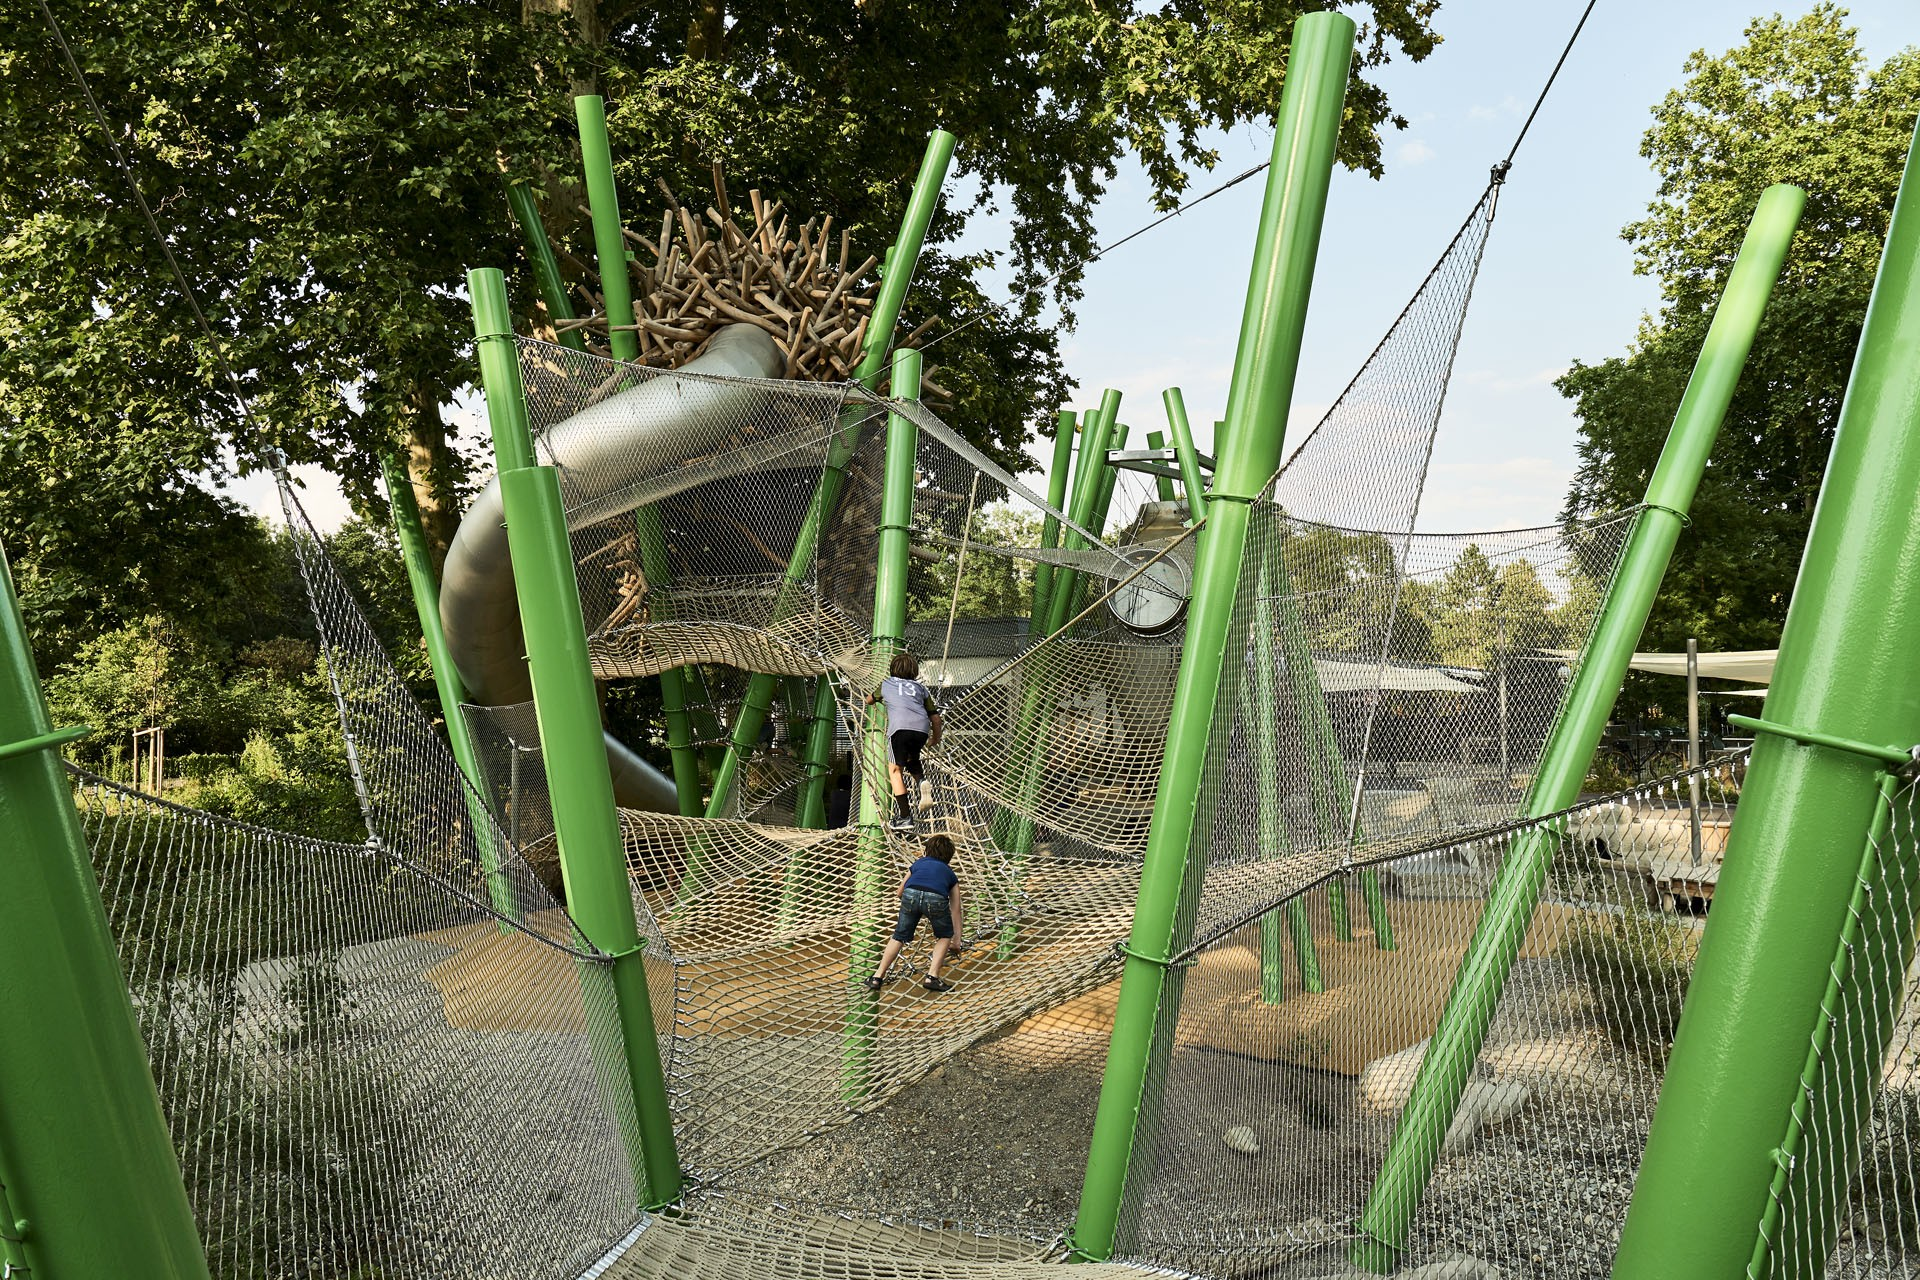 modern playground with wire meshes and textile nets